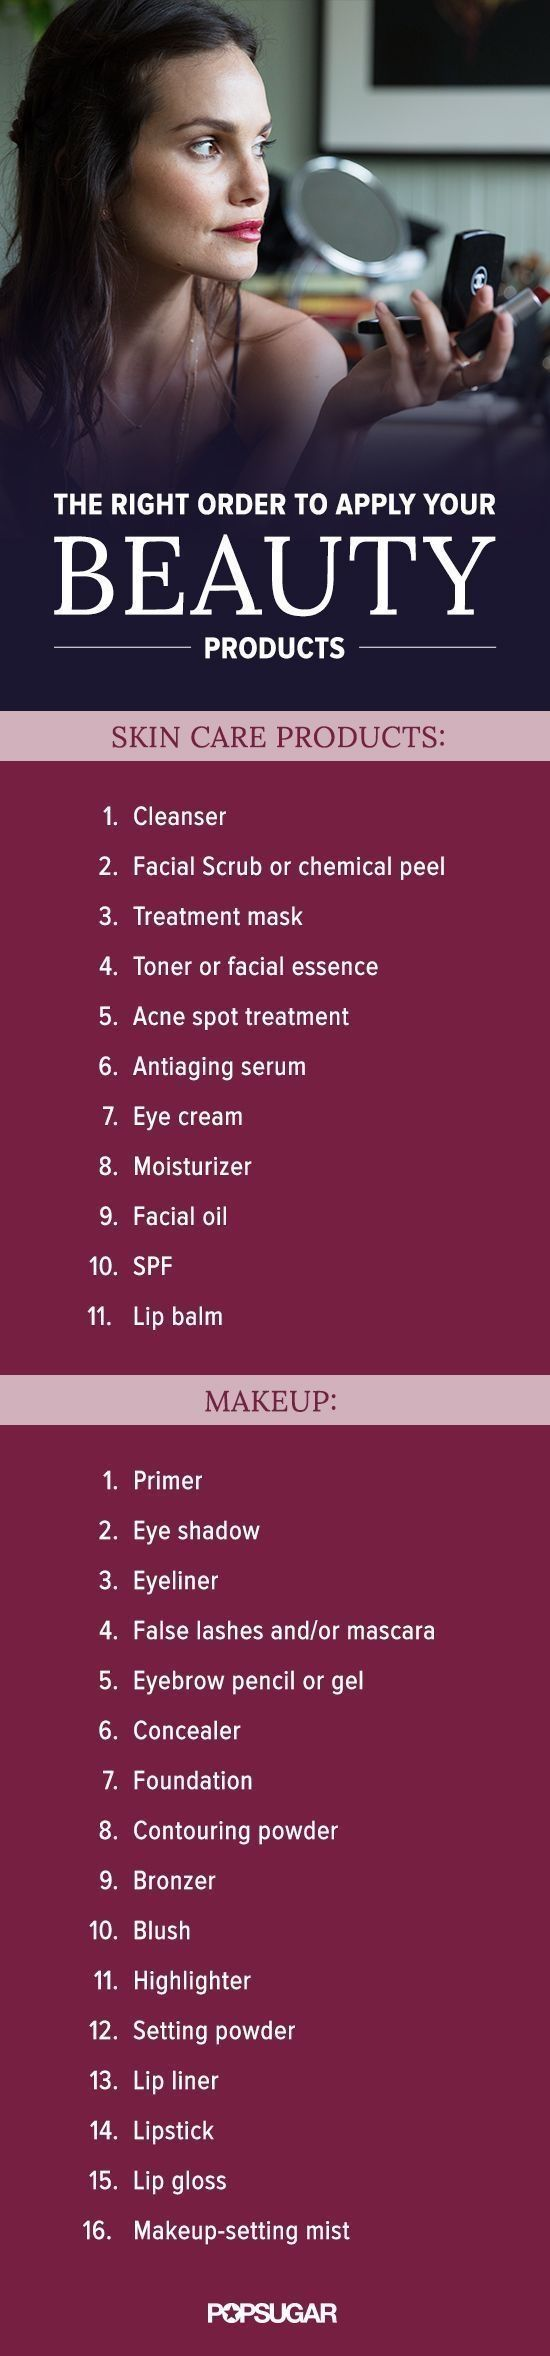 This is the right order to apply your skin care and makeup products. Are you doing it right?